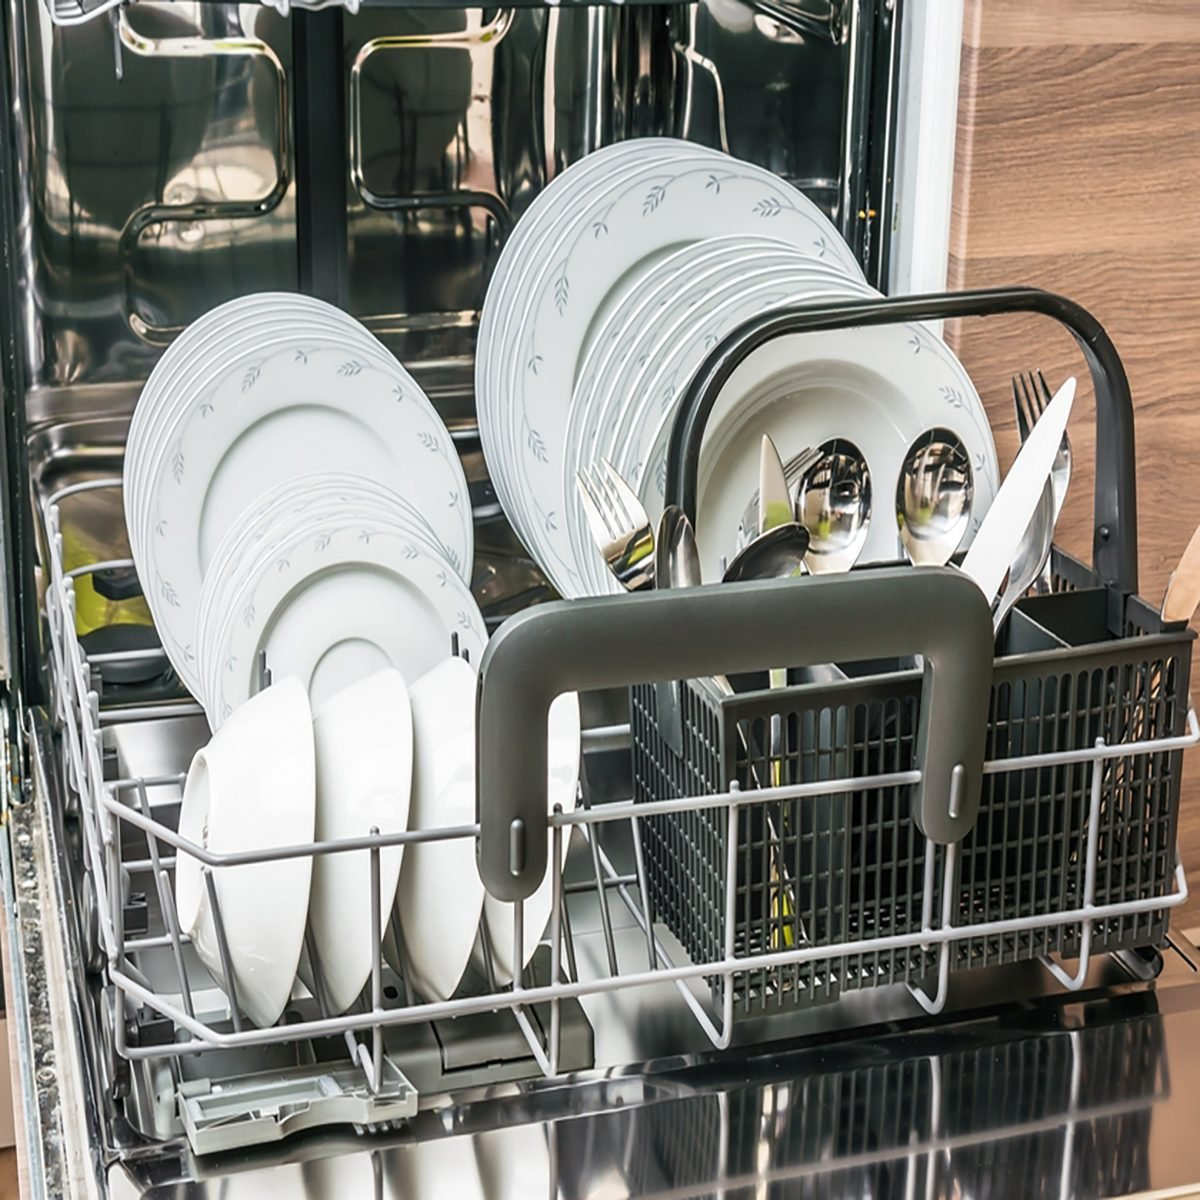 Open dishwasher with clean dishes after cleaning process.